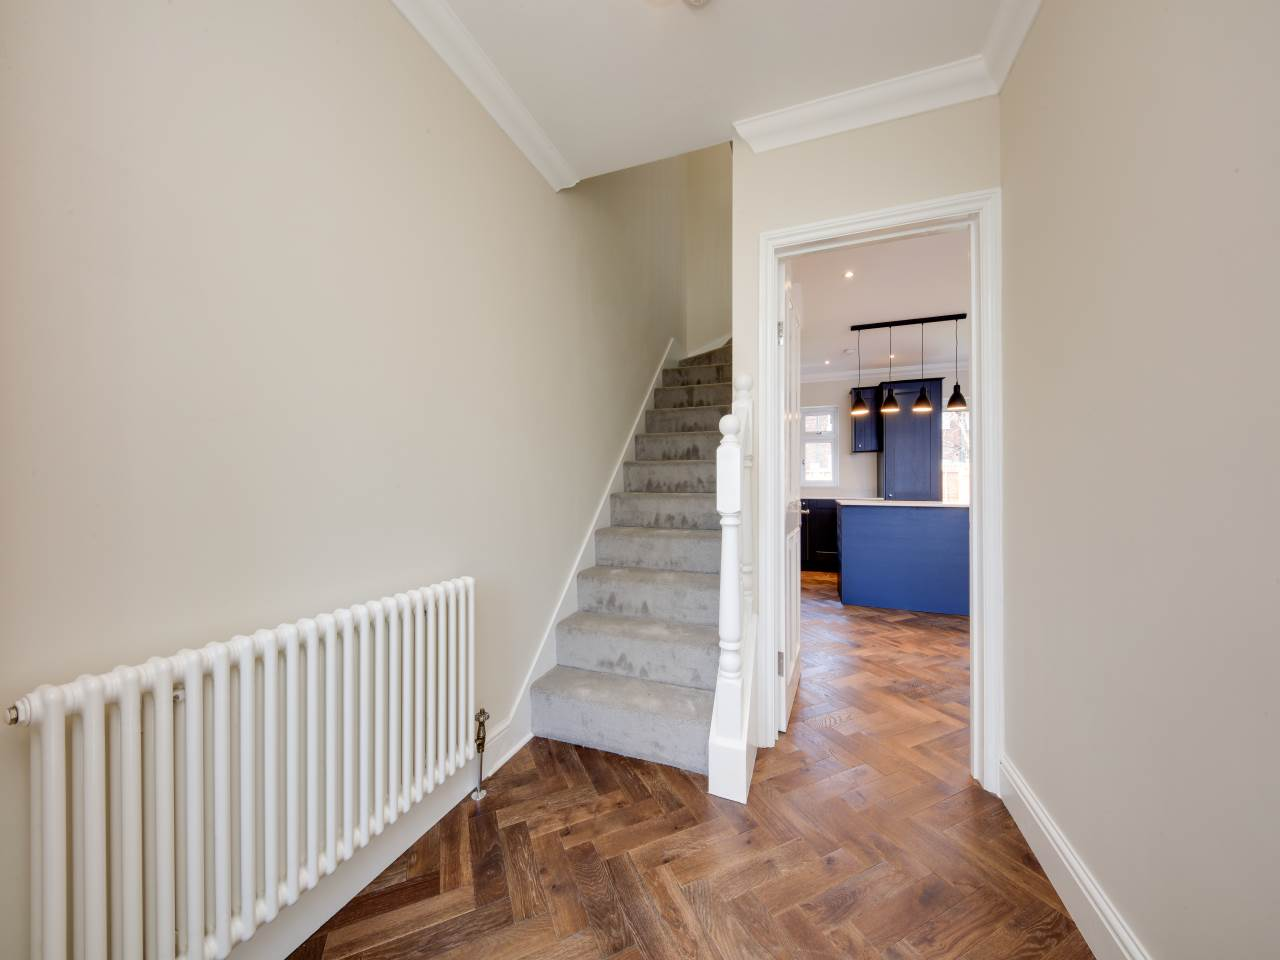 3 bed house for sale in Shernhall Street , Walthamstow   - Property Image 5